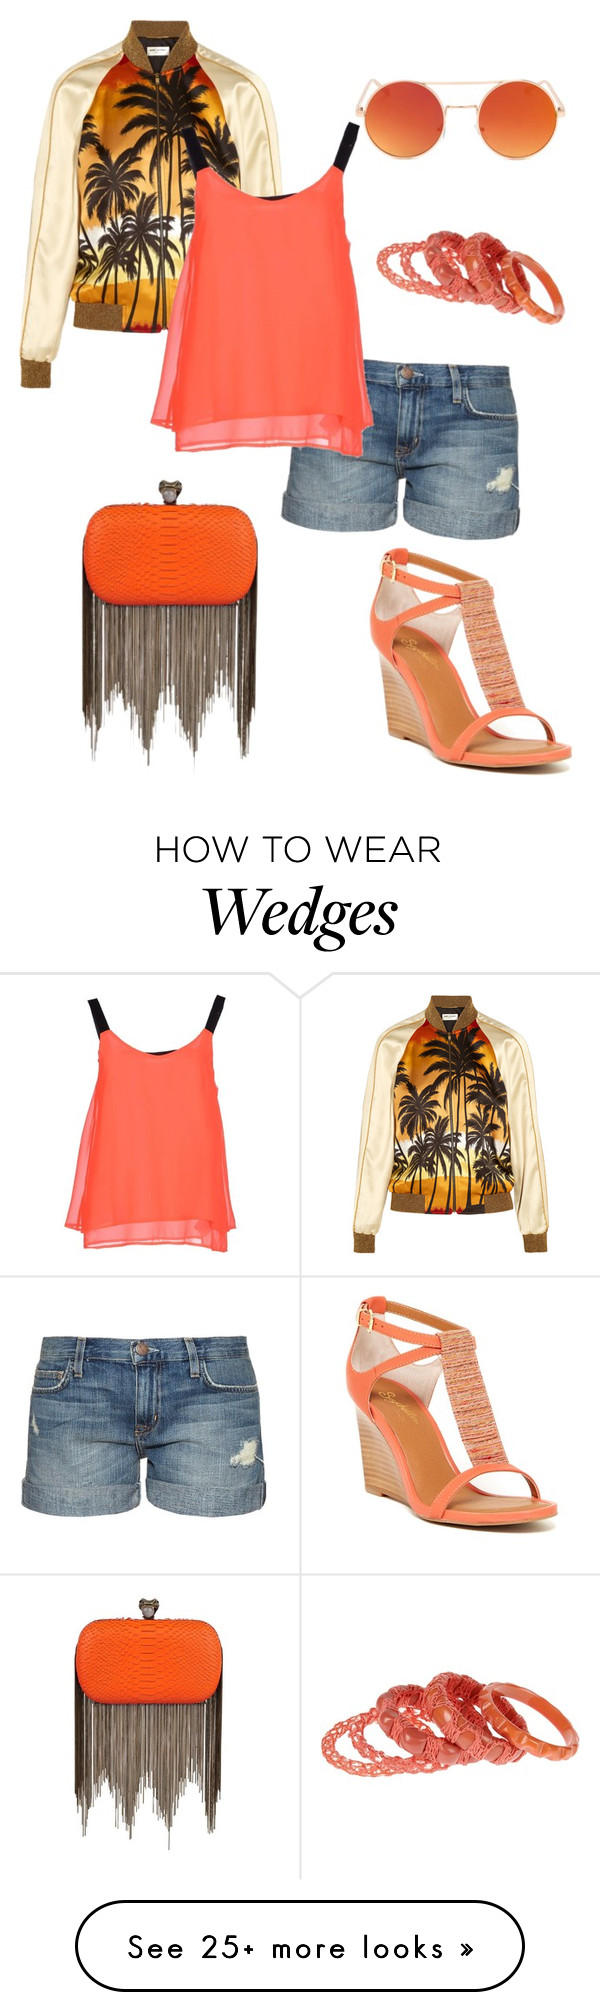 """Untitled #761"" by srlangley on Polyvore featuring House of Harlow 1960, Current/Elliott, Jamin Puech, Yves Saint Laurent, Seychelles and ONLY"